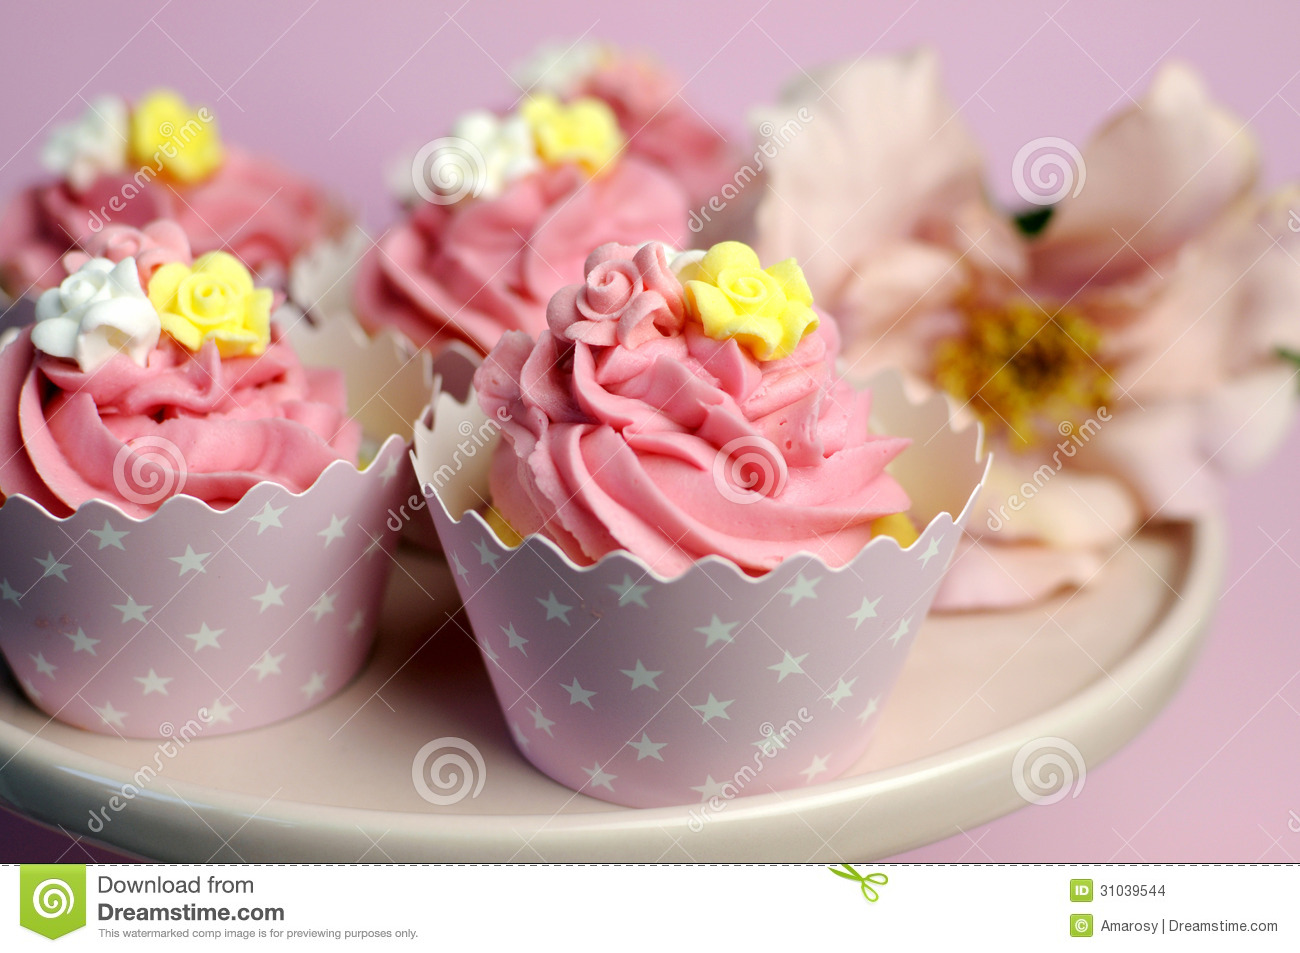 Beautiful pink decorated cupcakes on pink cake stand close up with beautiful pink decorated cupcakes on pink cake stand for birthday wedding or female special event occasionwith pink flower close up with bokeh izmirmasajfo